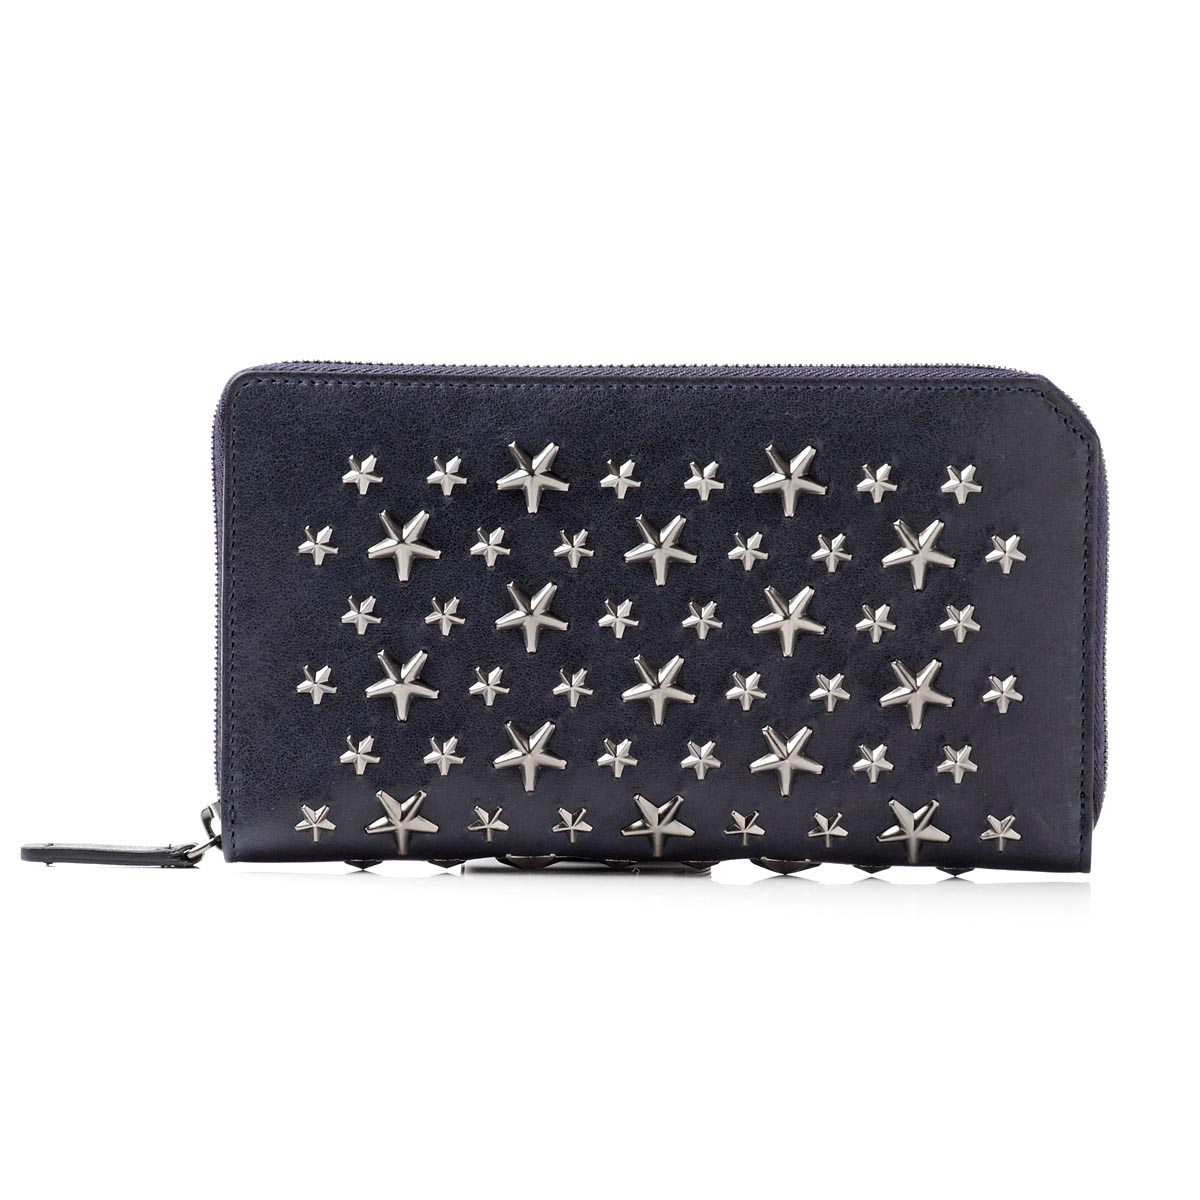 carnaby bls wallet Jimmy Choo London GKRxUt75